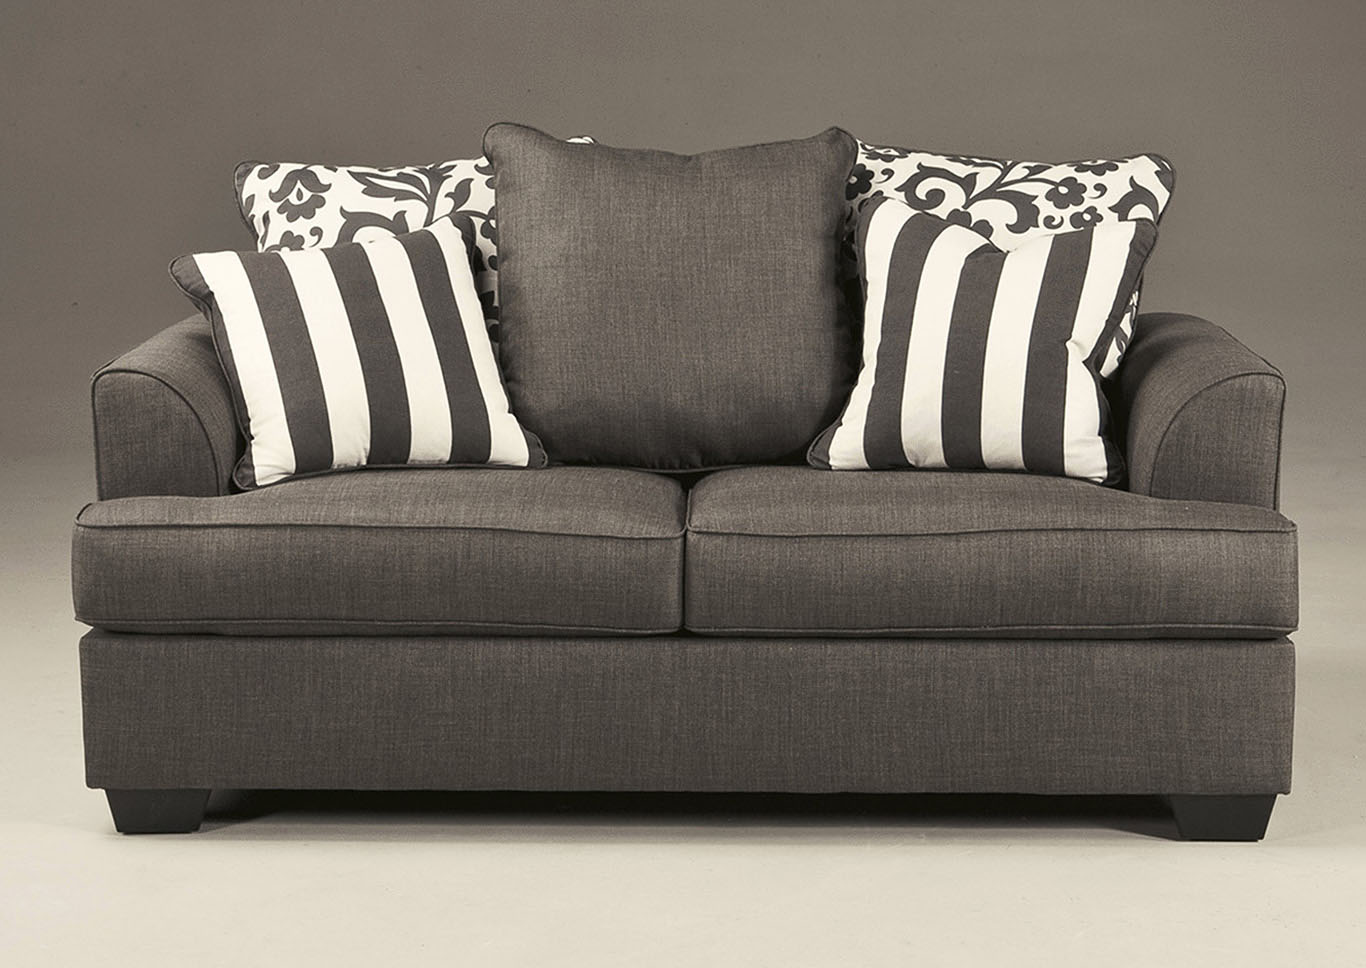 Levon Charcoal Loveseat,Signature Design By Ashley